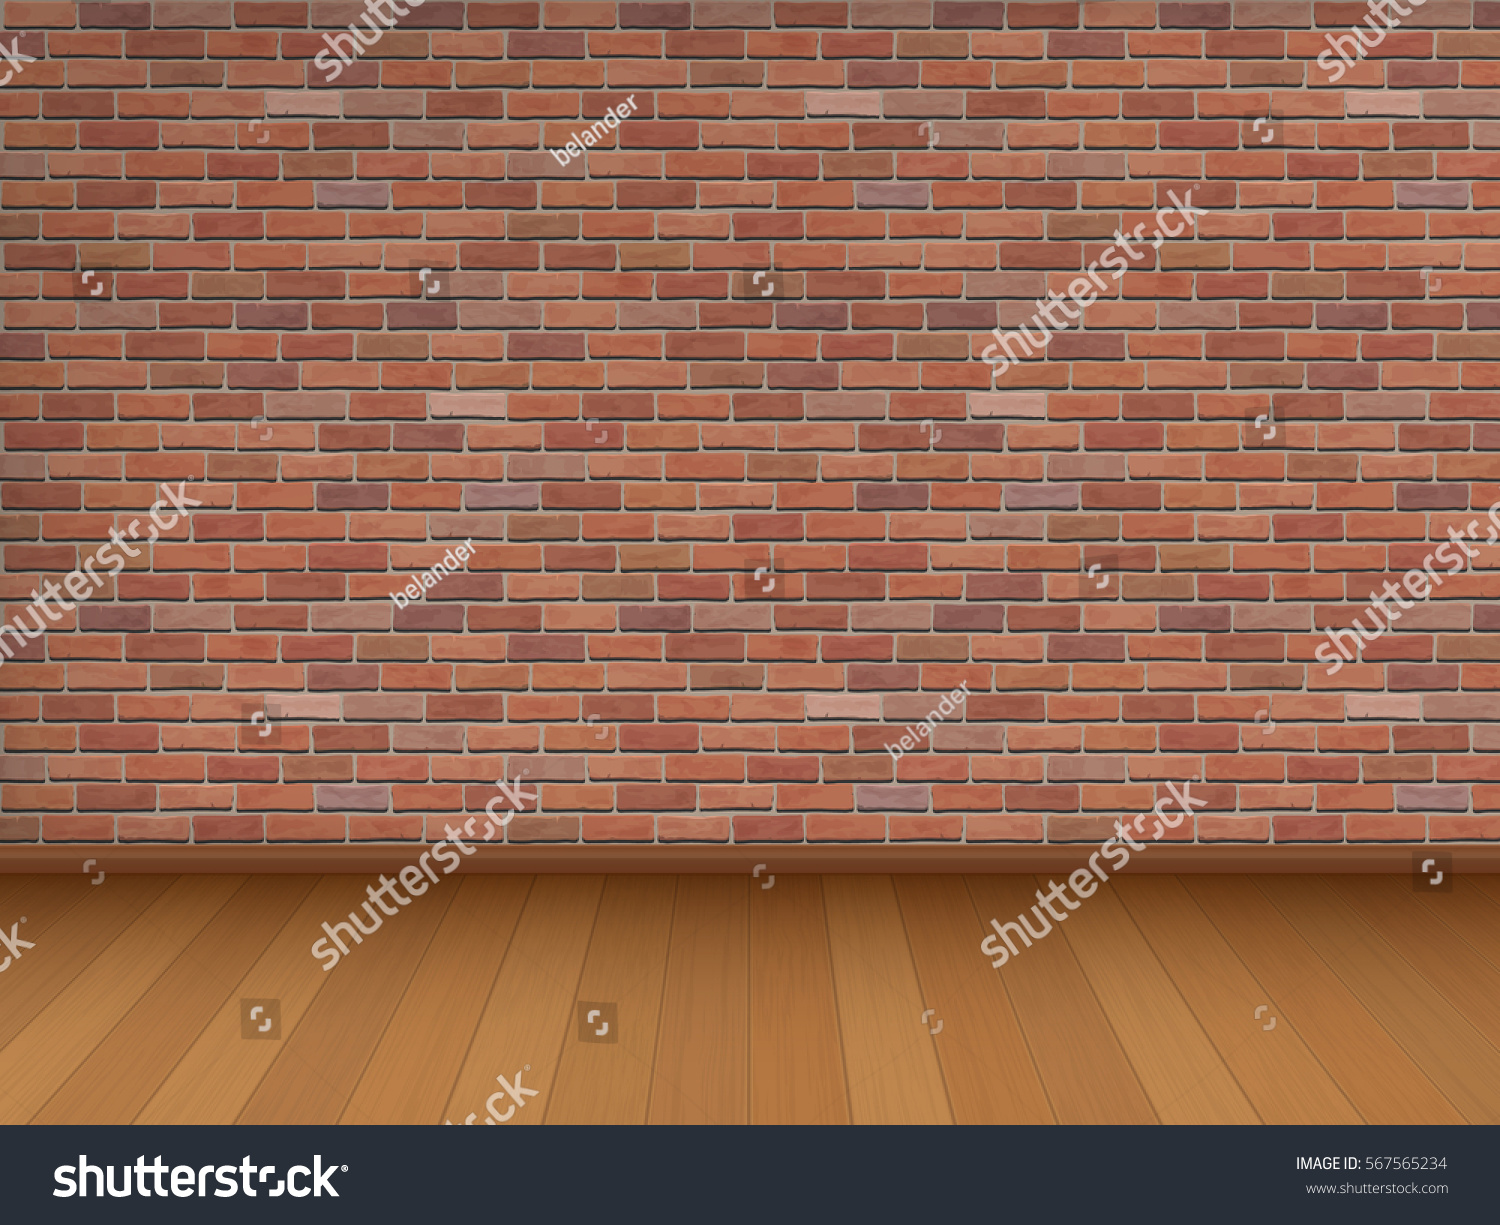 Brick Vector Picture Brick Veneers: Red Brick Wall Wooden Floor Architectural Stock Vector